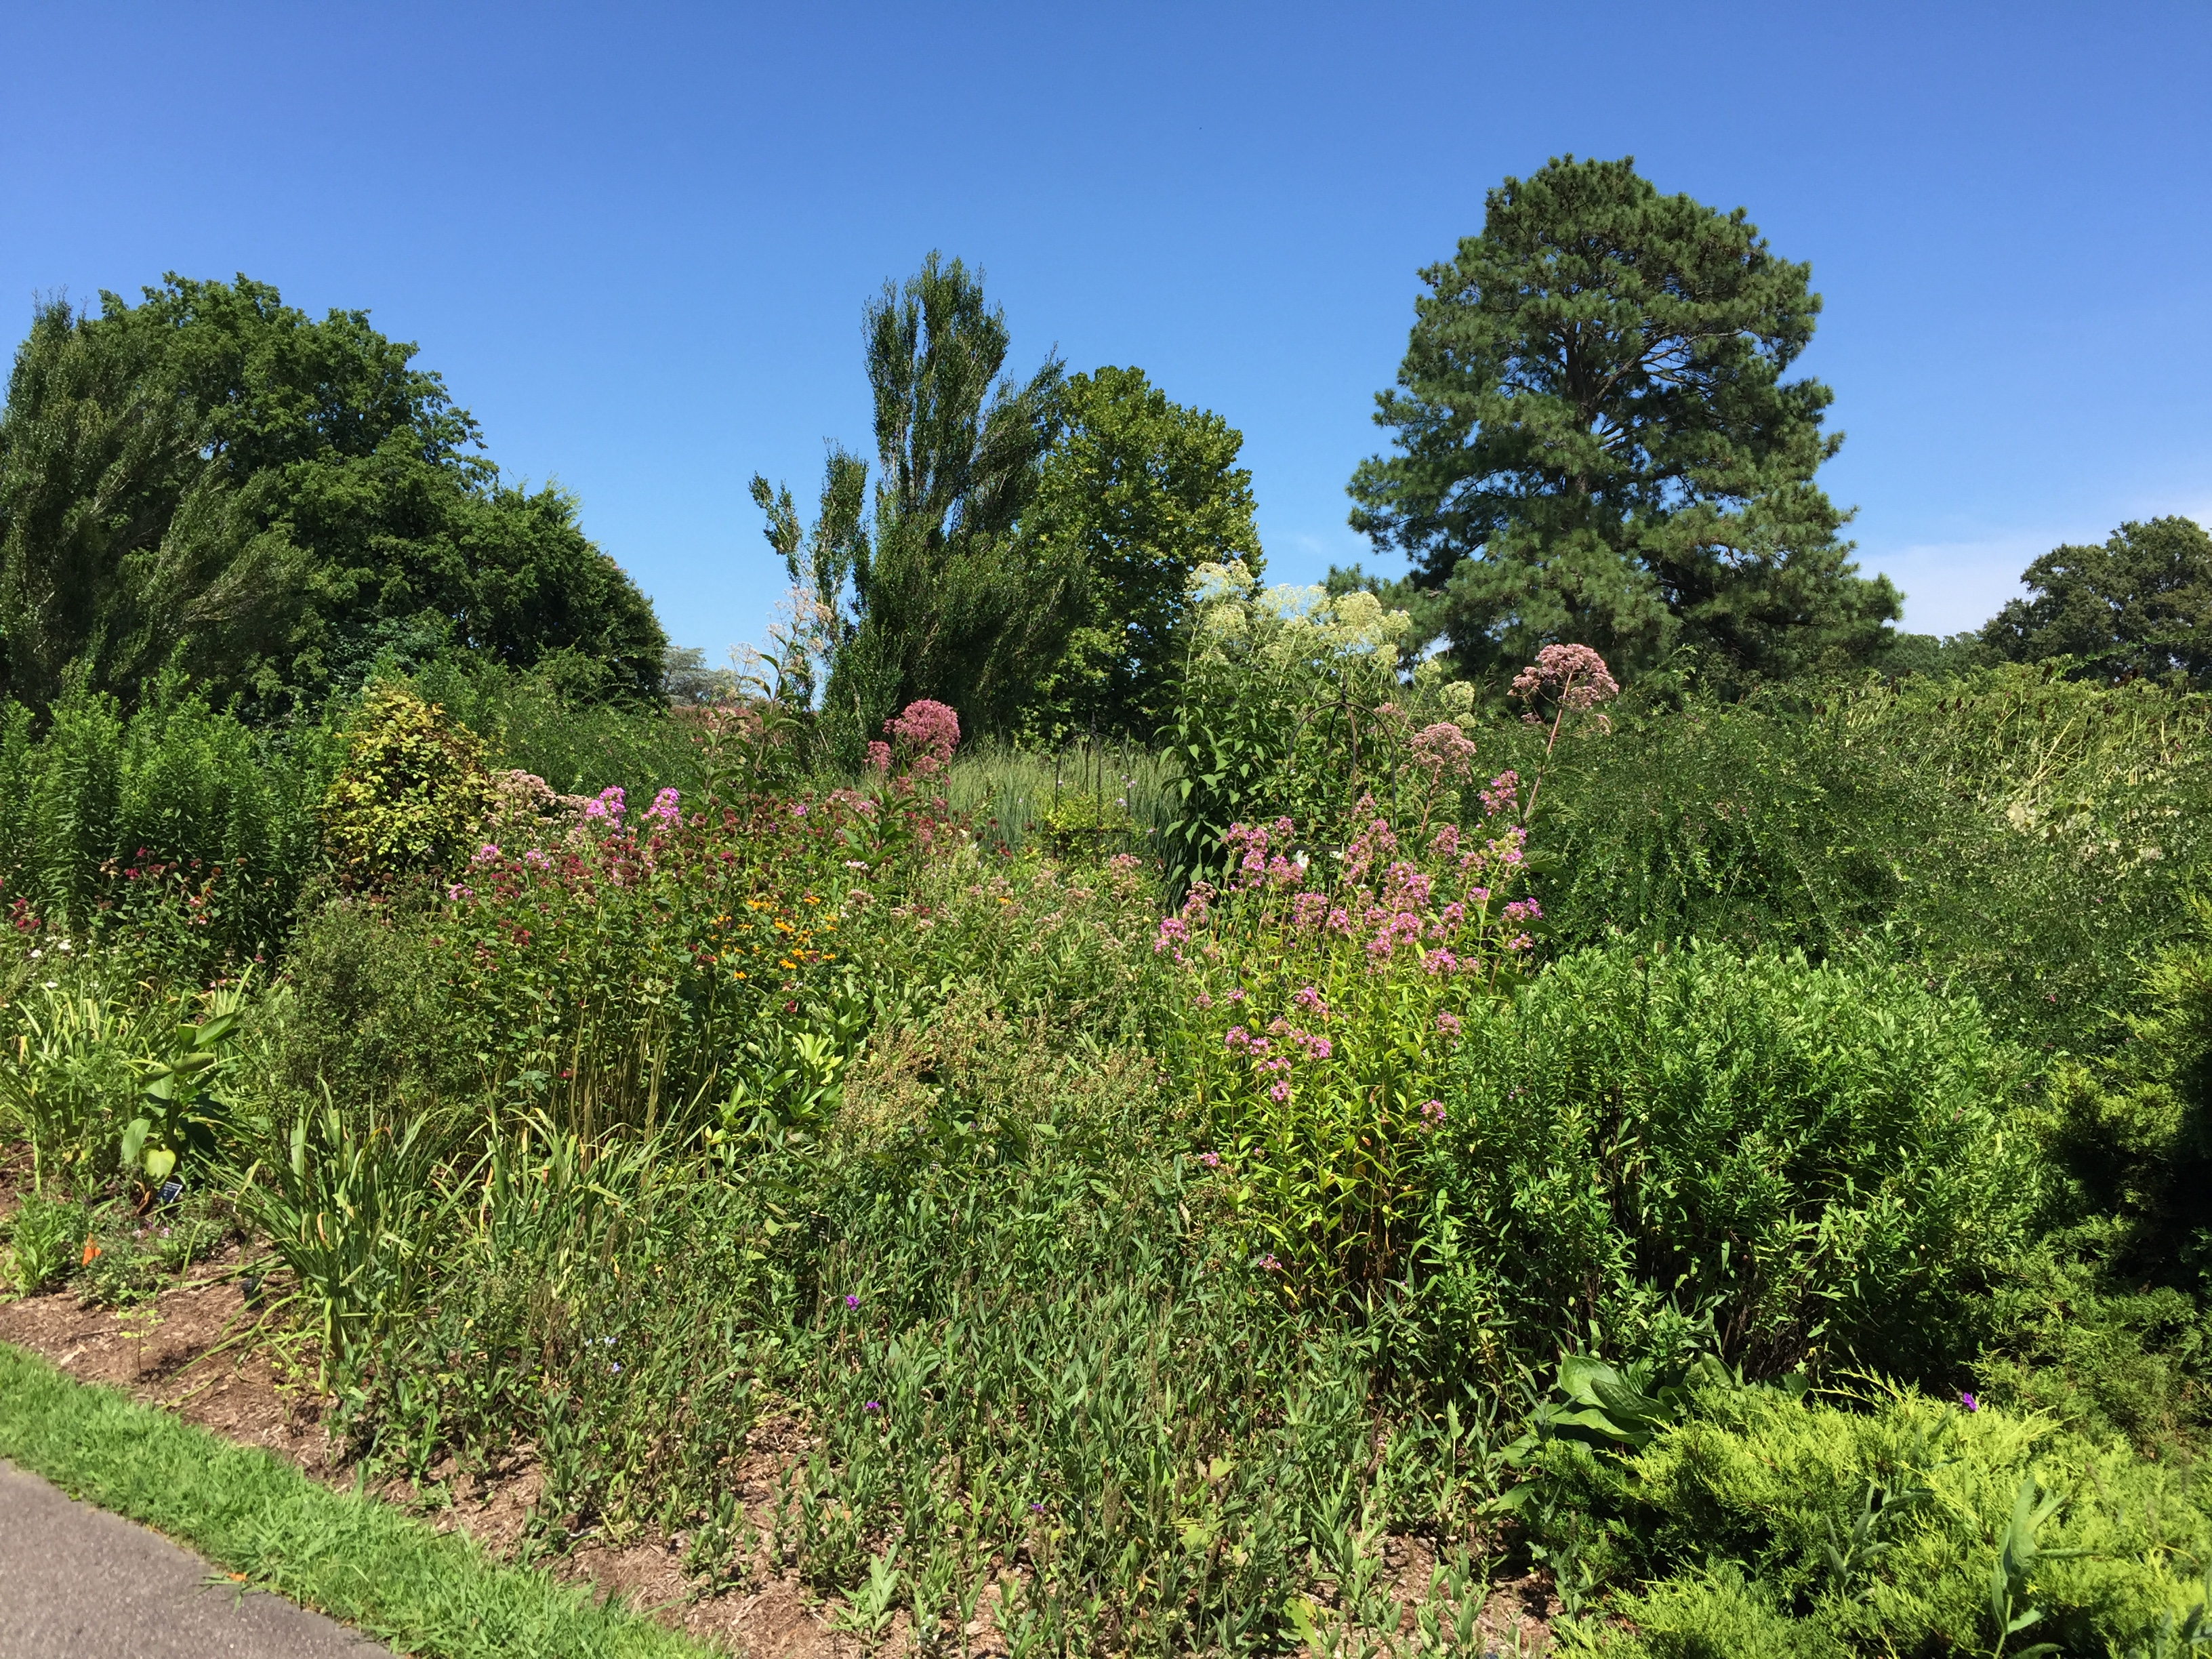 The Border Garden is inspired by renowned landscape designers Beatrix Farrand and Gertrude Jekyll. Photo © 2018 Elaine Mills.